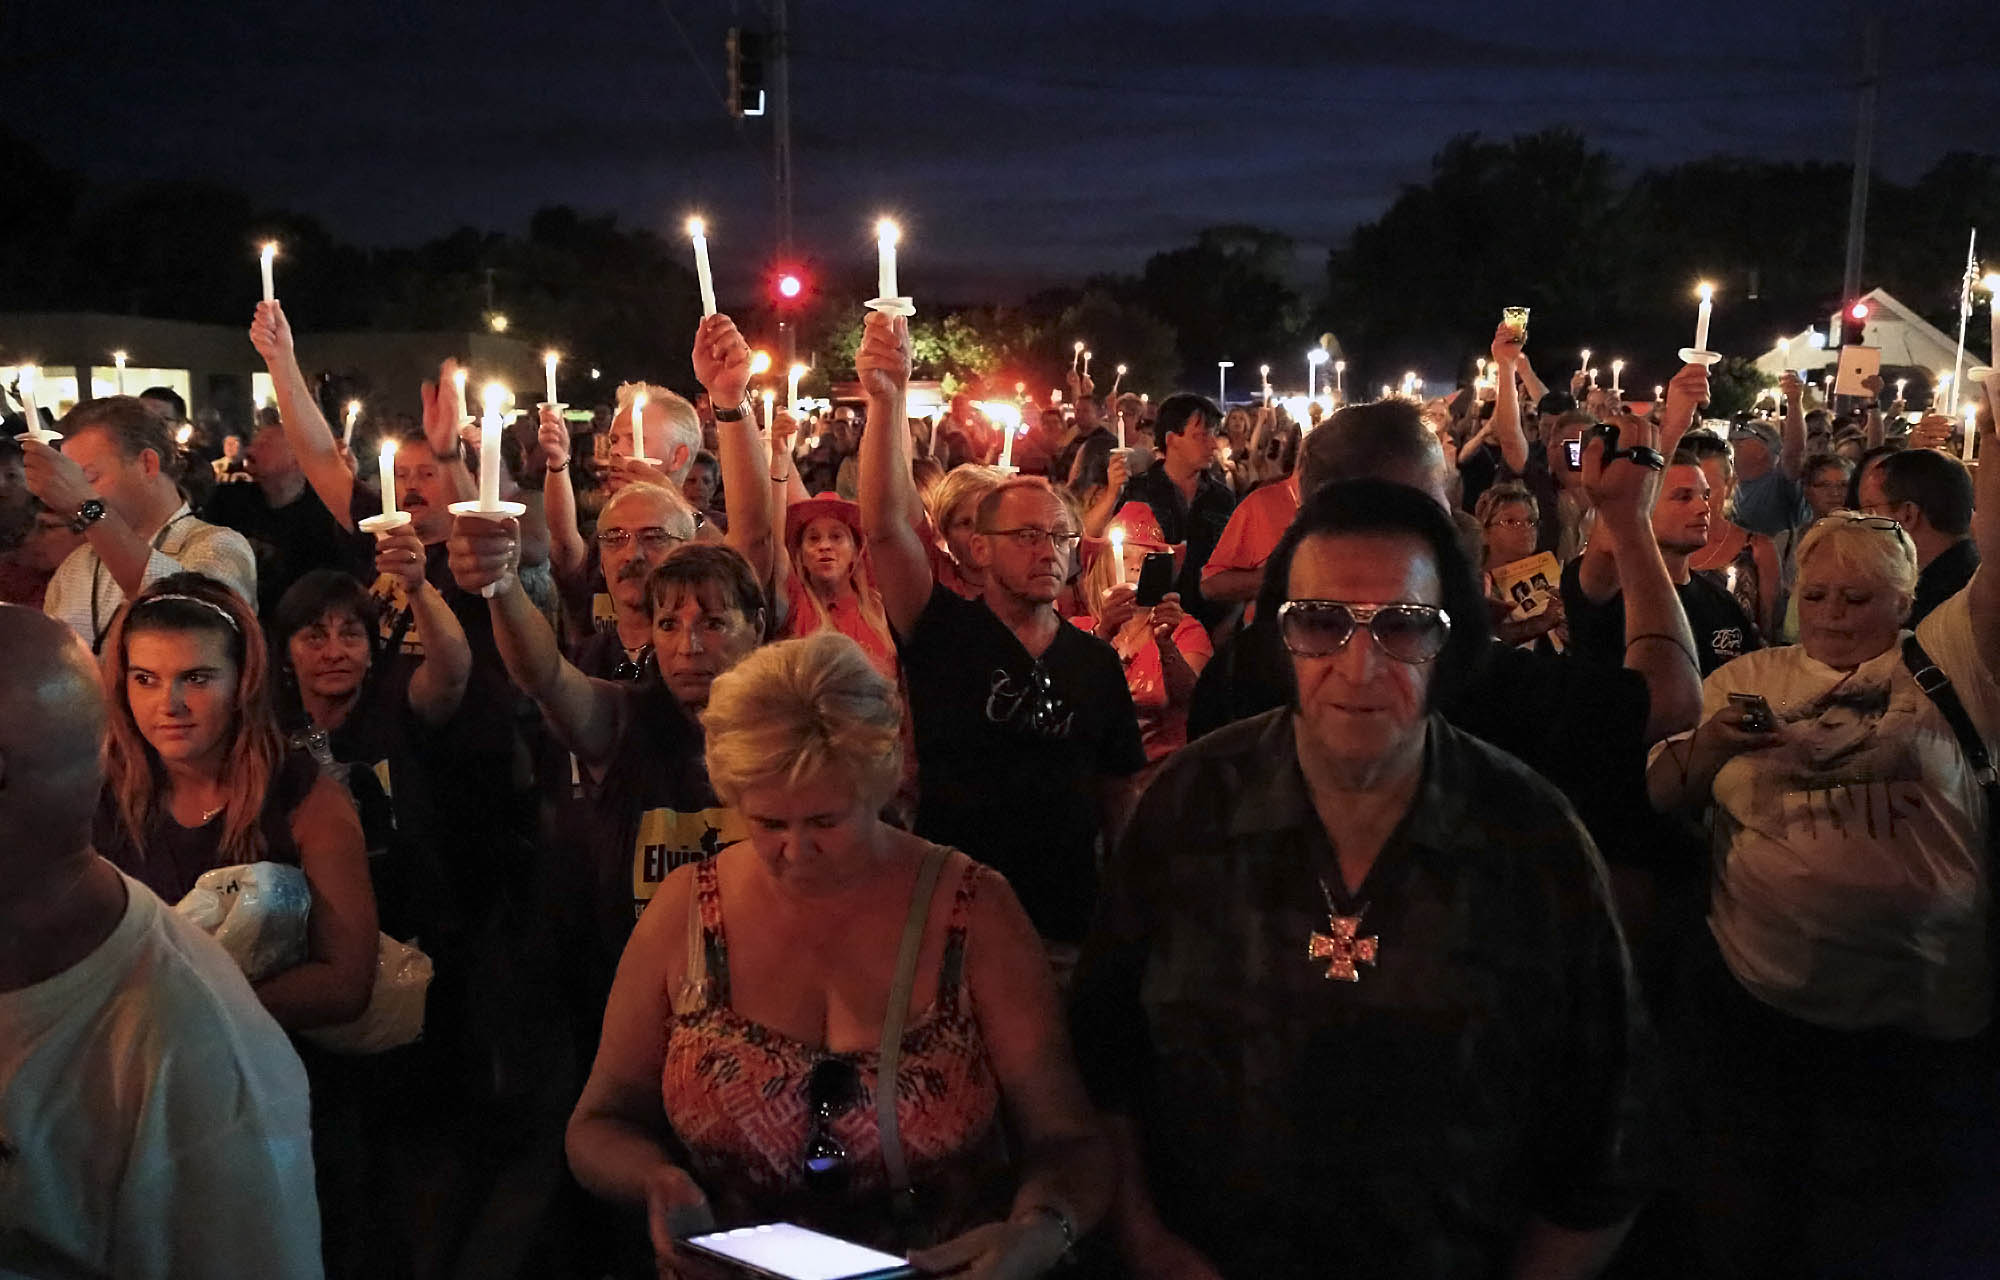 Elvis candlelight vigil at Graceland